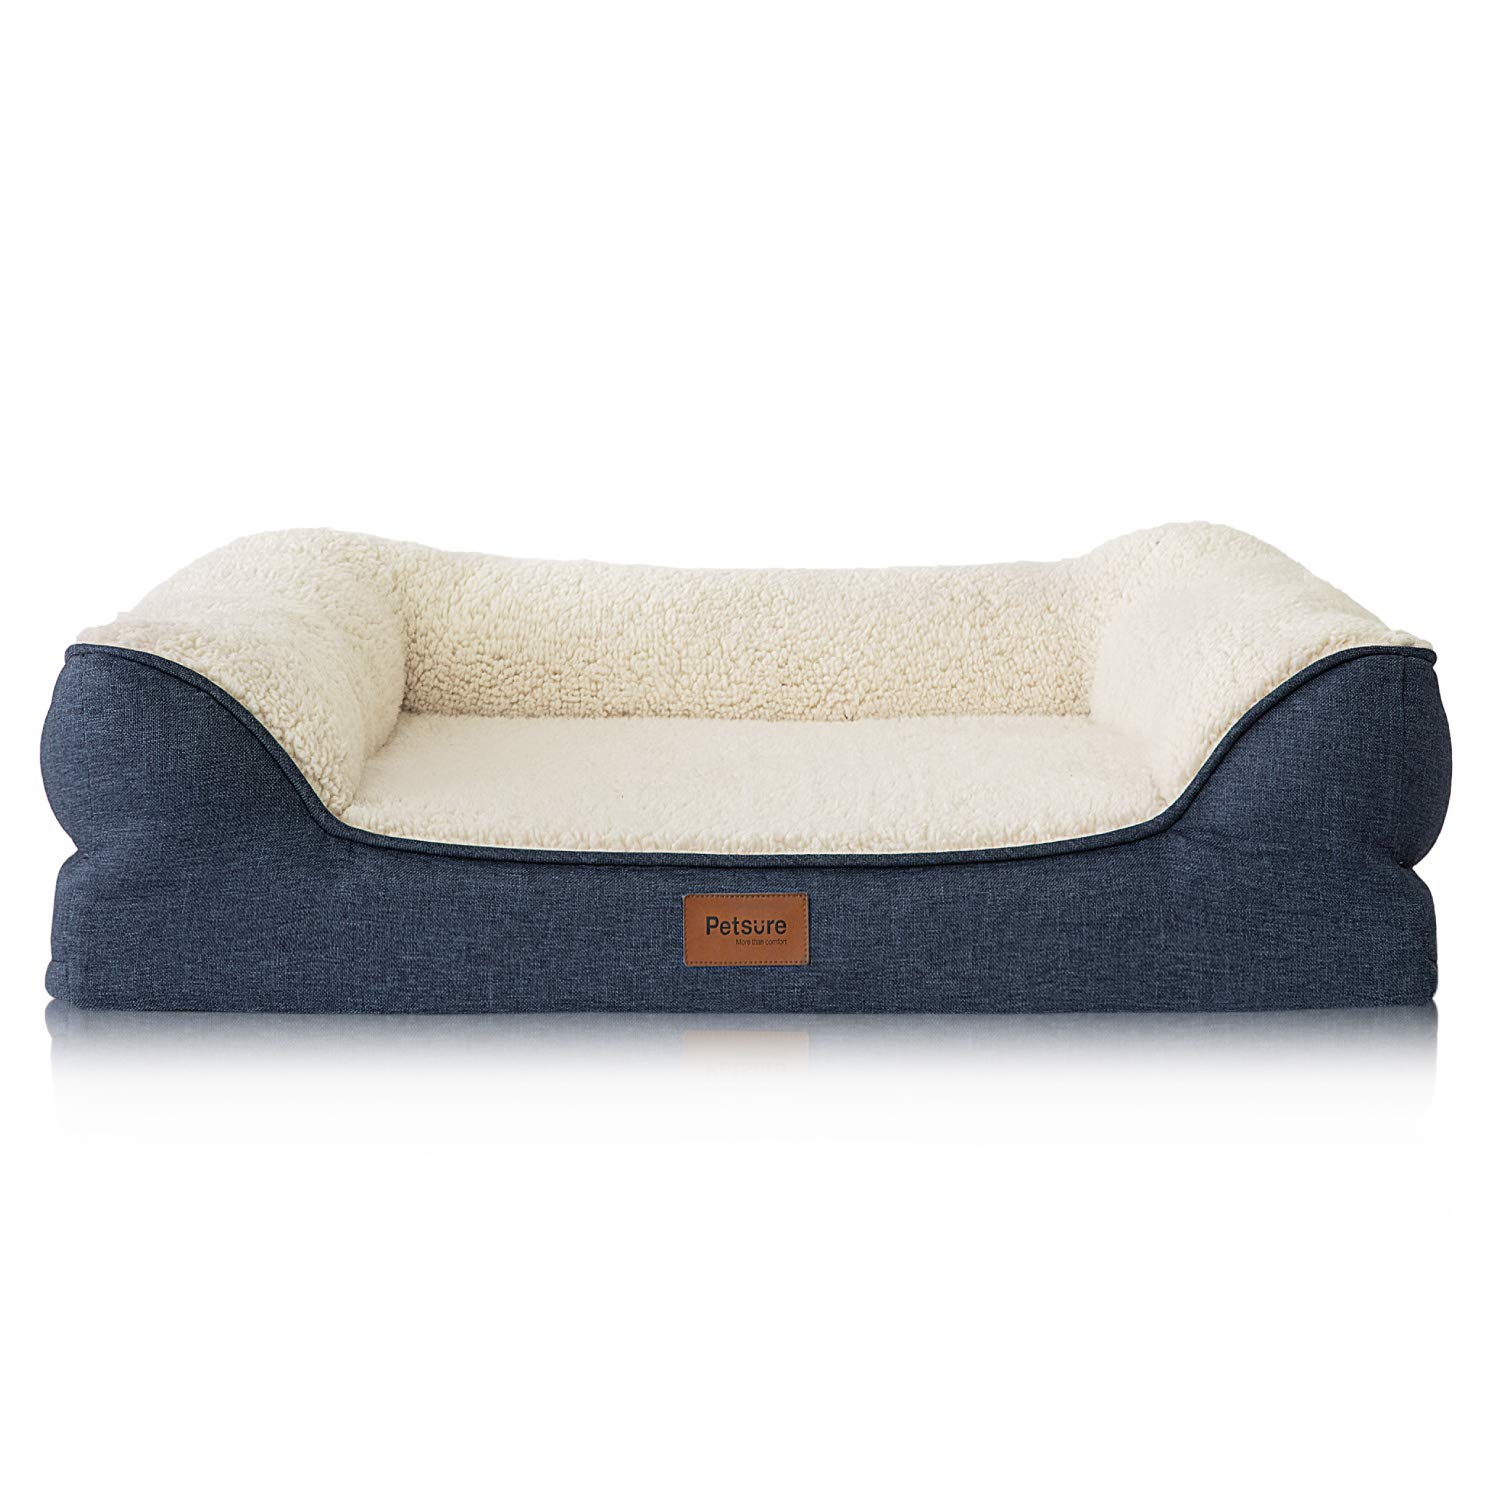 Bedsure Orthopedic Dog Bed for Medium Dogs – Memory Foam Waterproof Dog Bed Medium Washable Pet Sofa Beds with Removable…